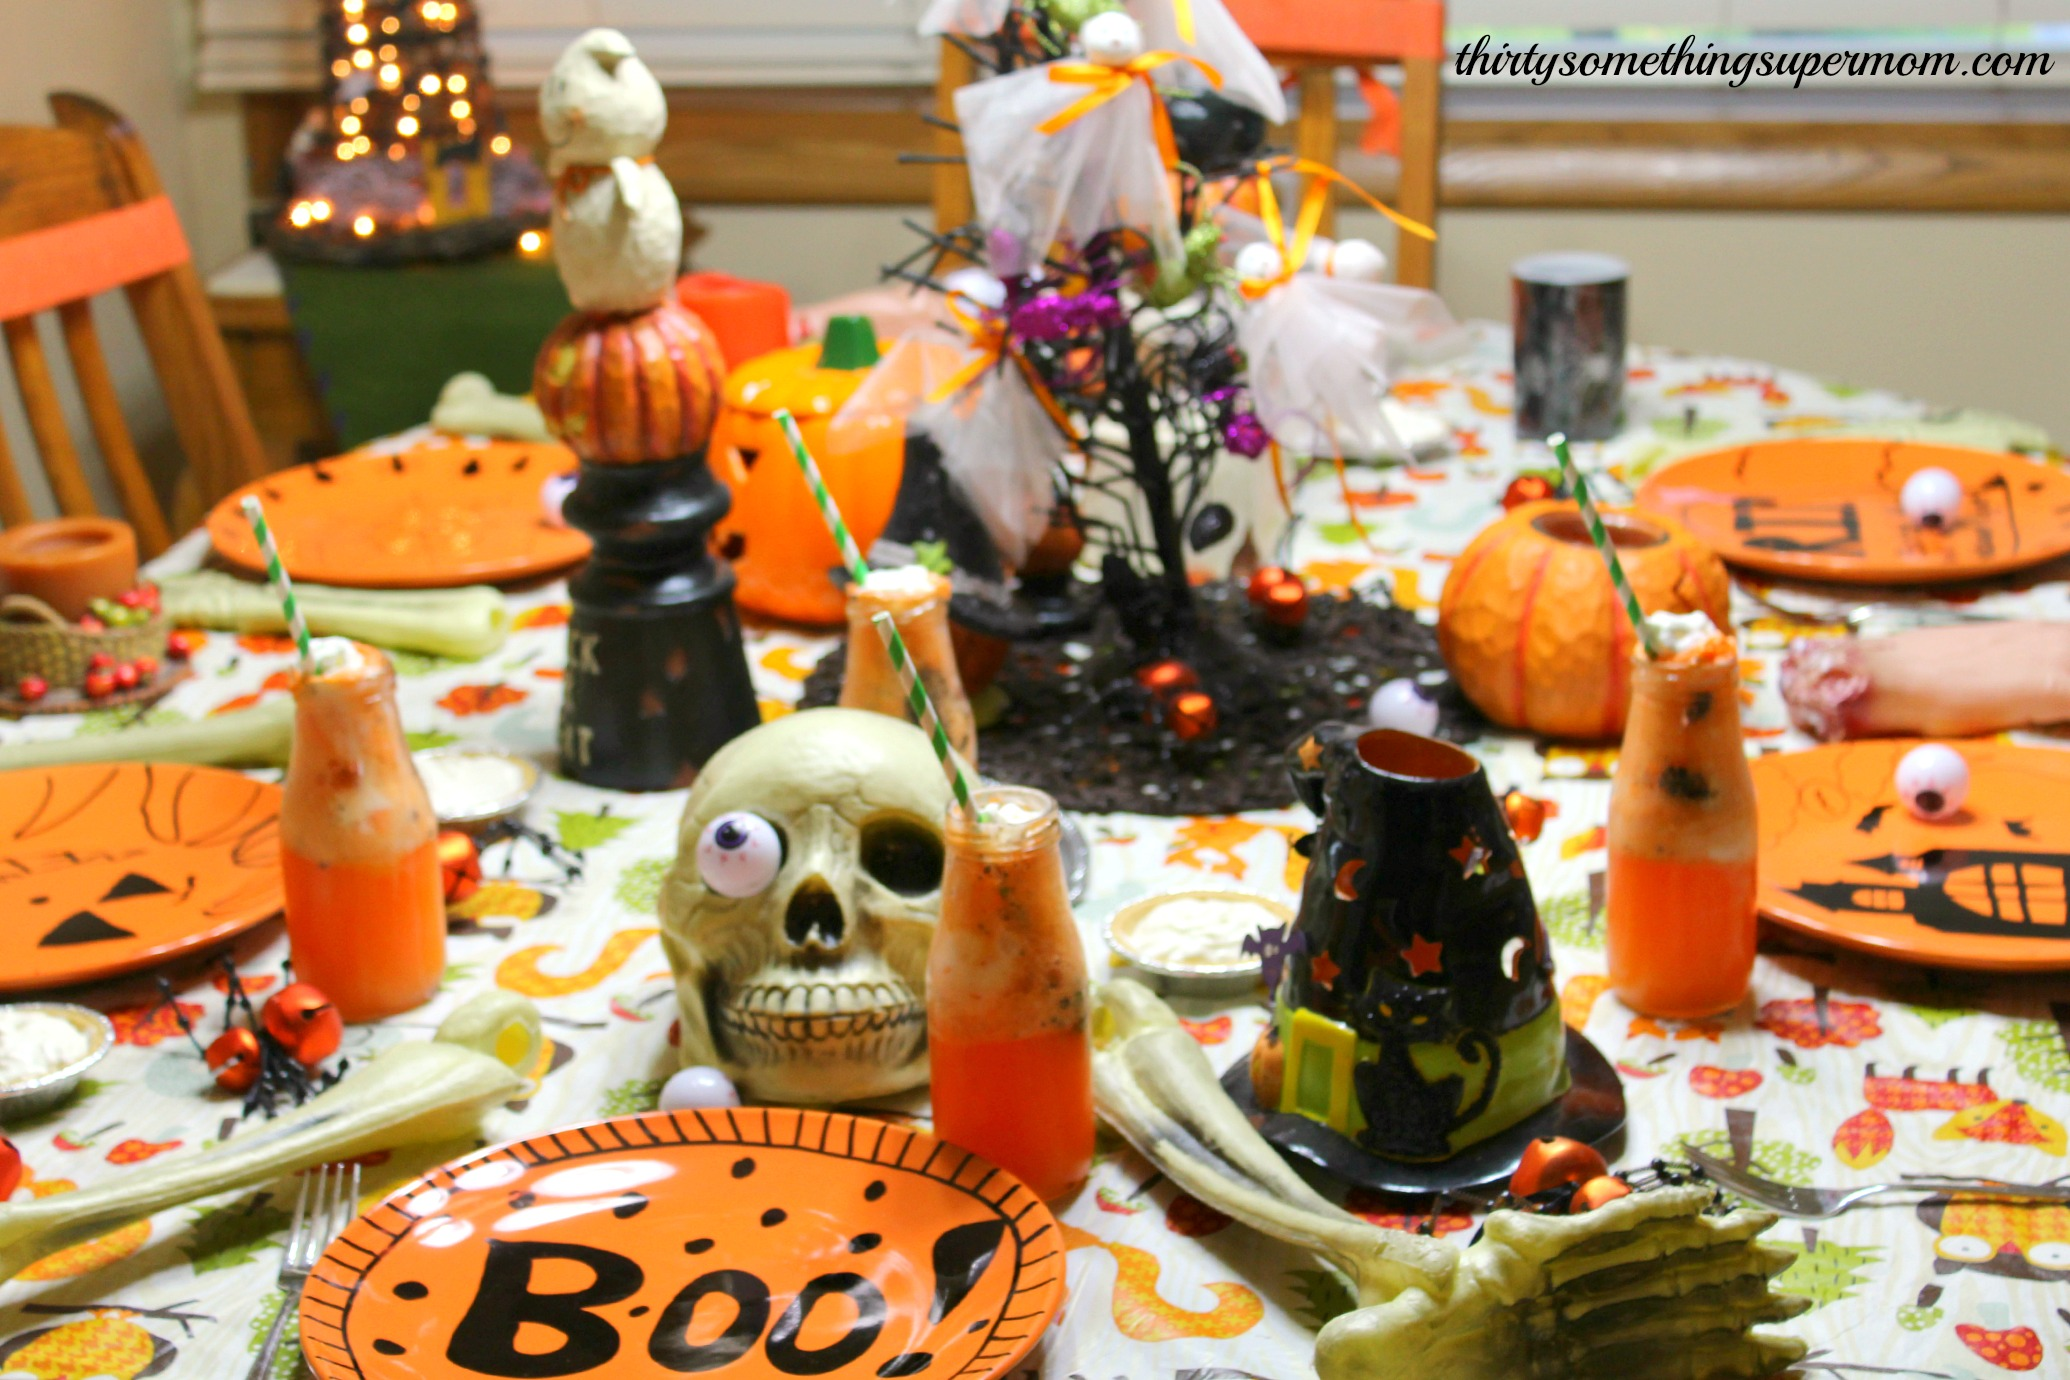 Spooky Halloween Party & Tablescape Ideas - ThirtySomethingSuperMom